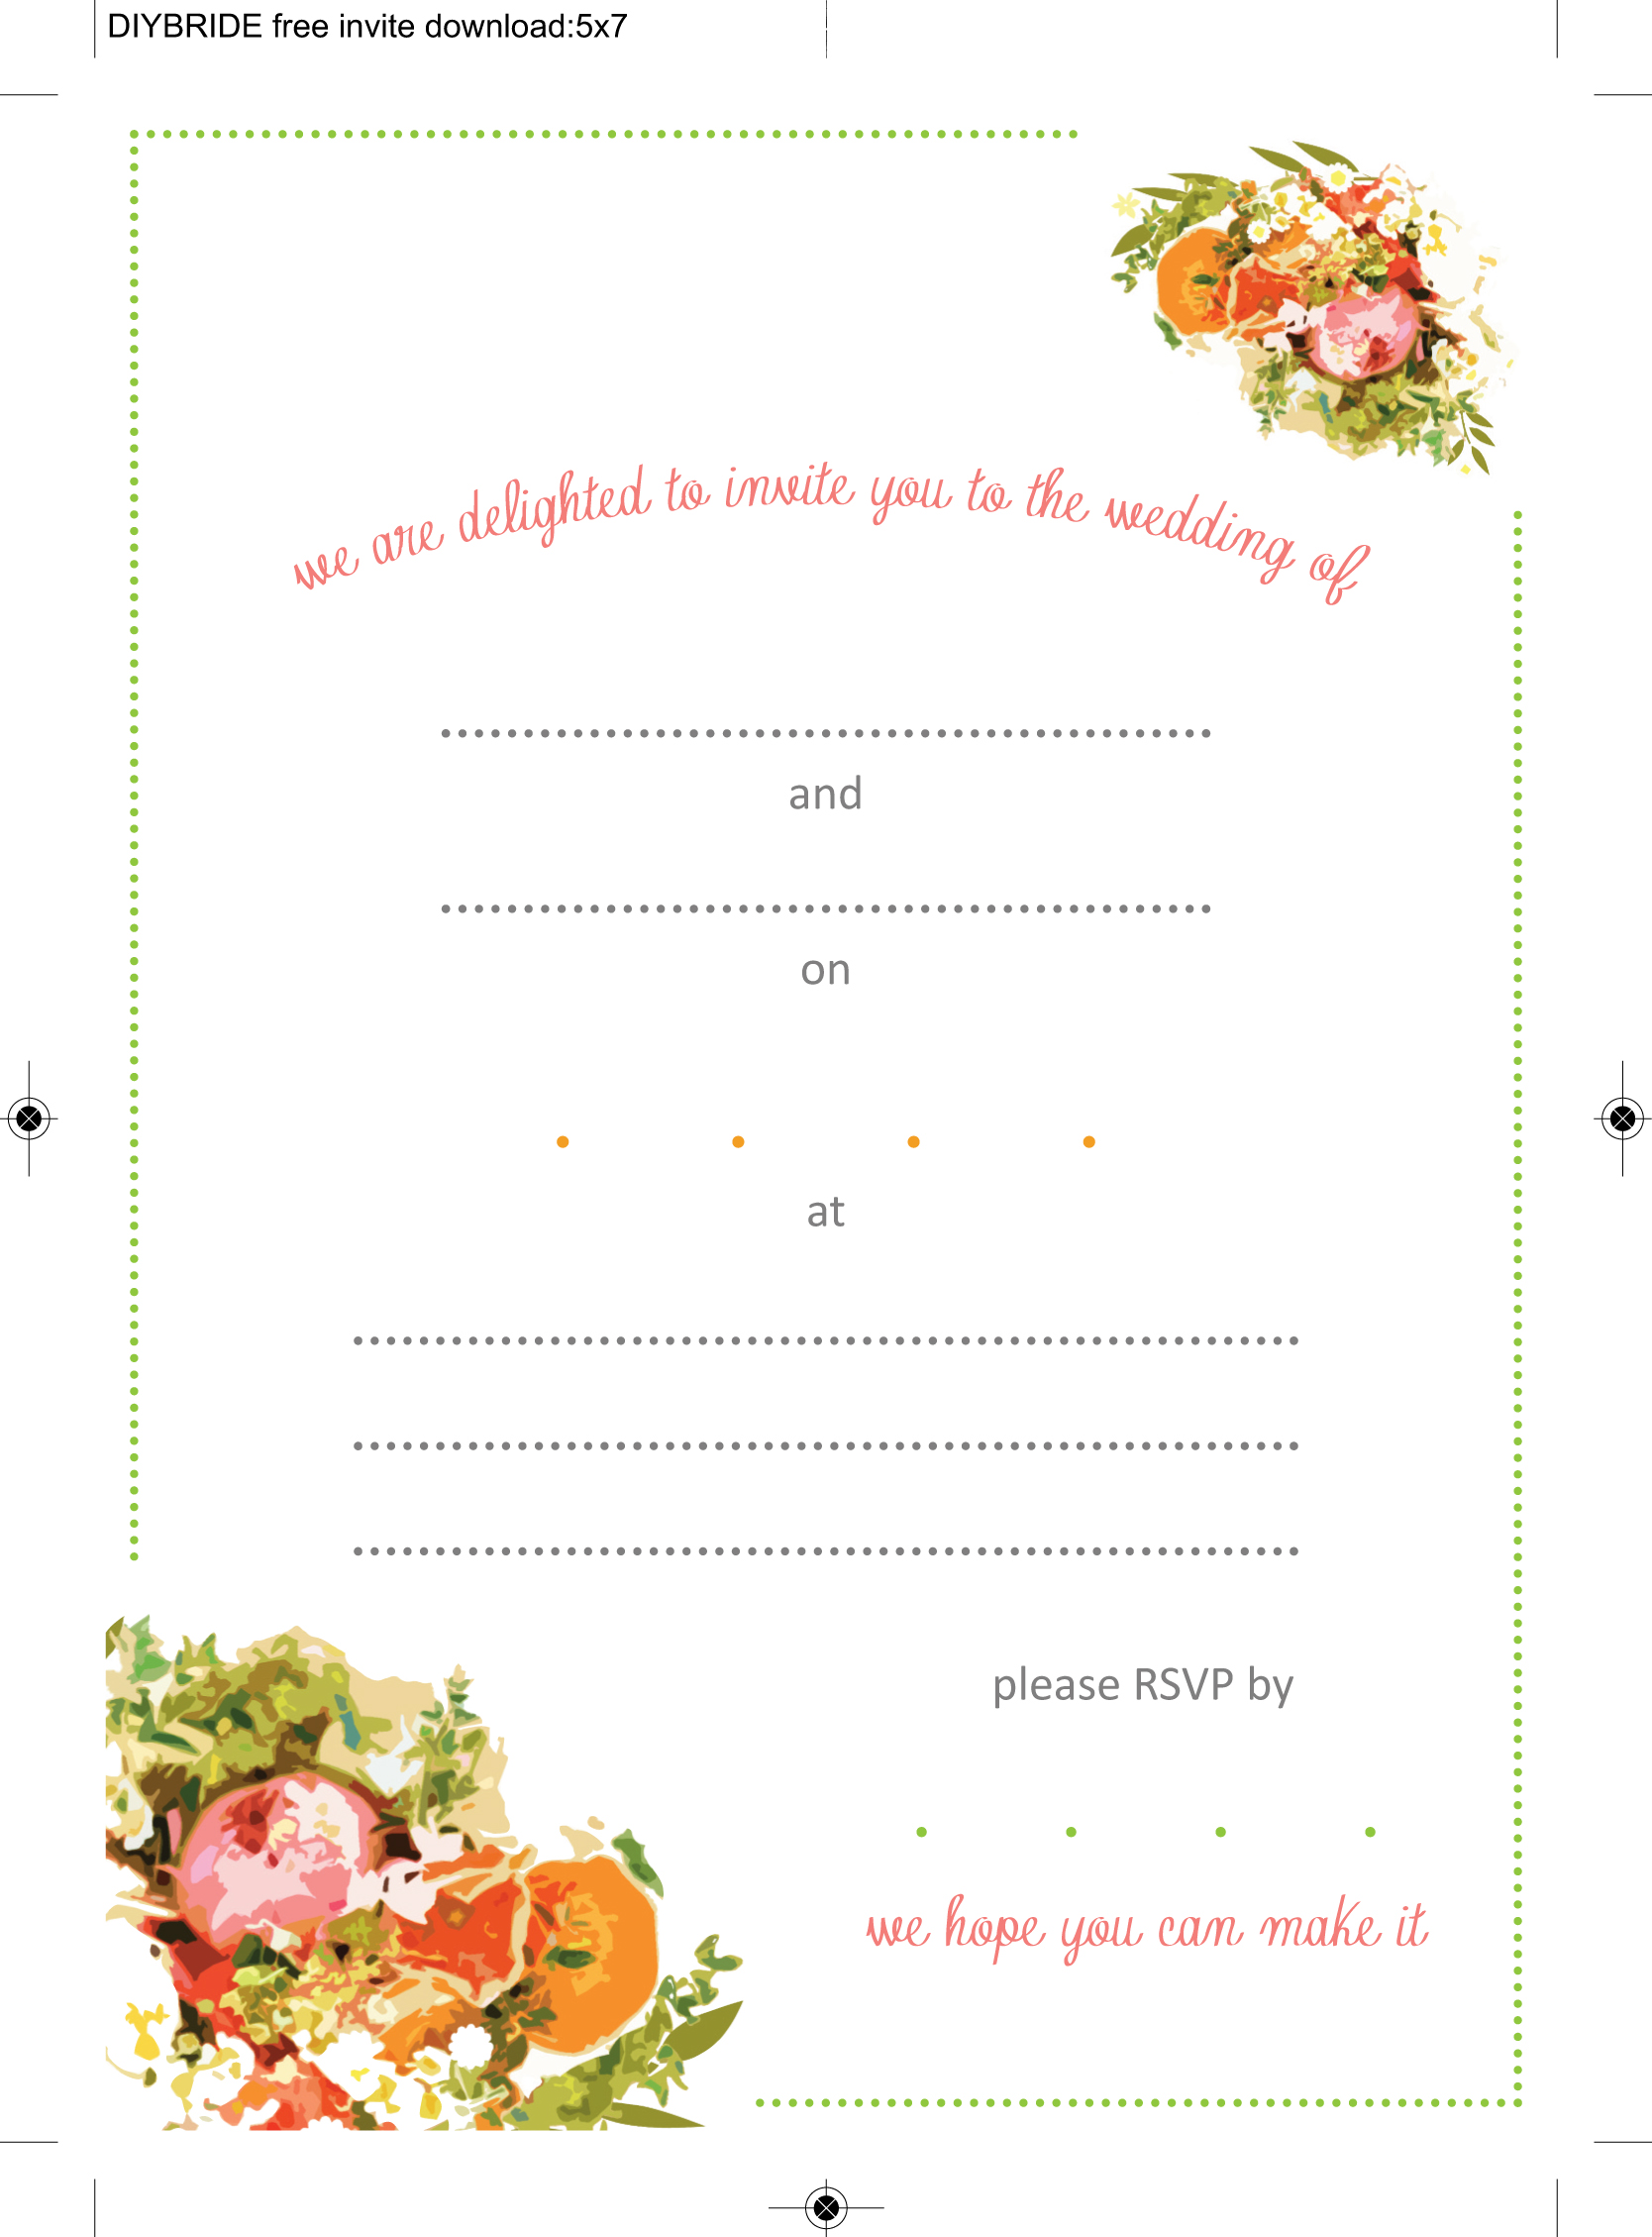 Wedding Invitation Templates That Are Cute And Easy to Make – How to Make Party Invitations on Microsoft Word